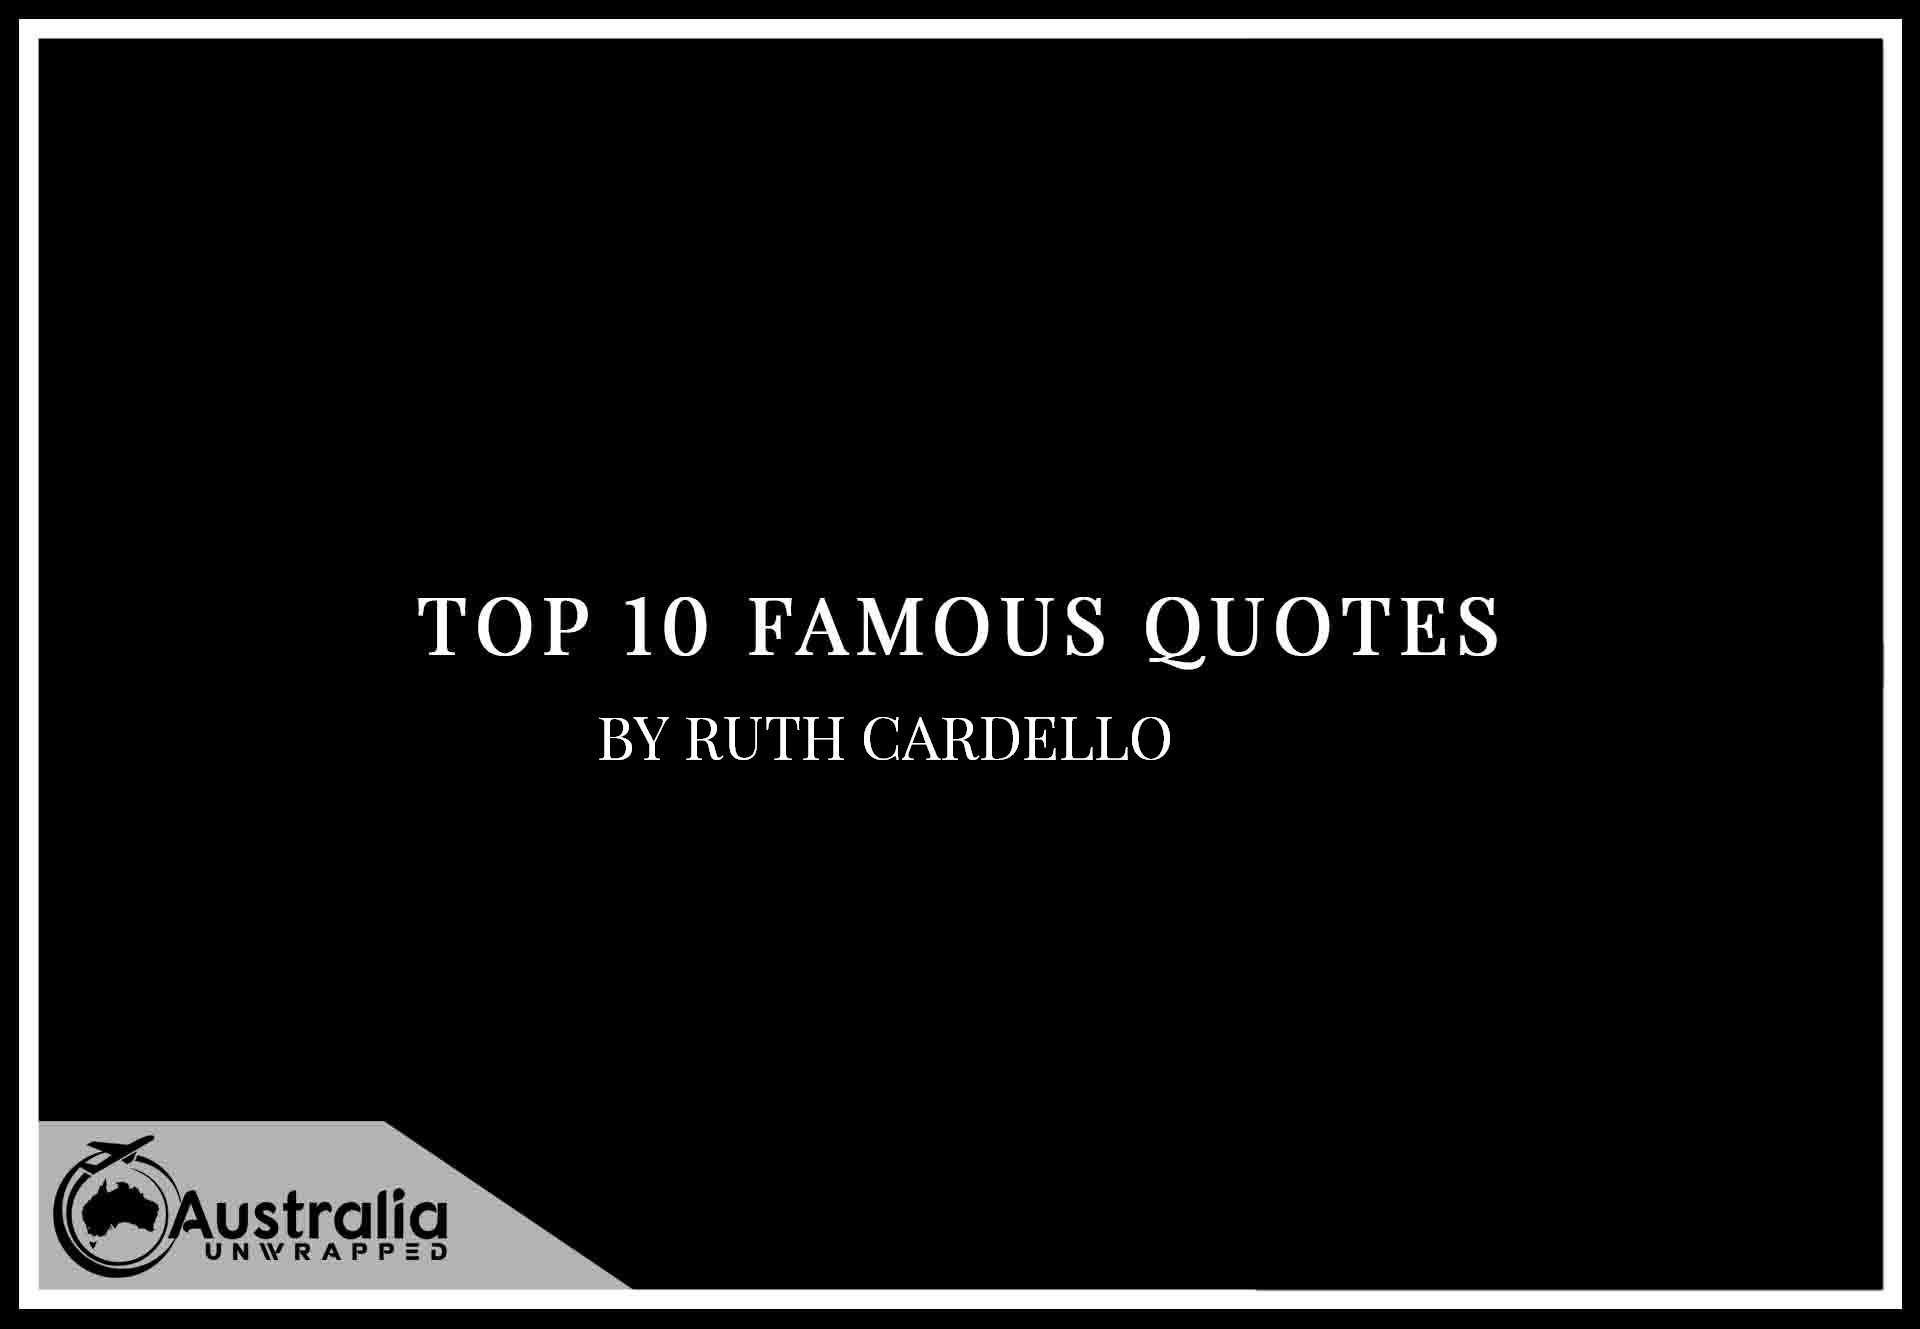 Top 10 Famous Quotes by Author Ruth Cardello